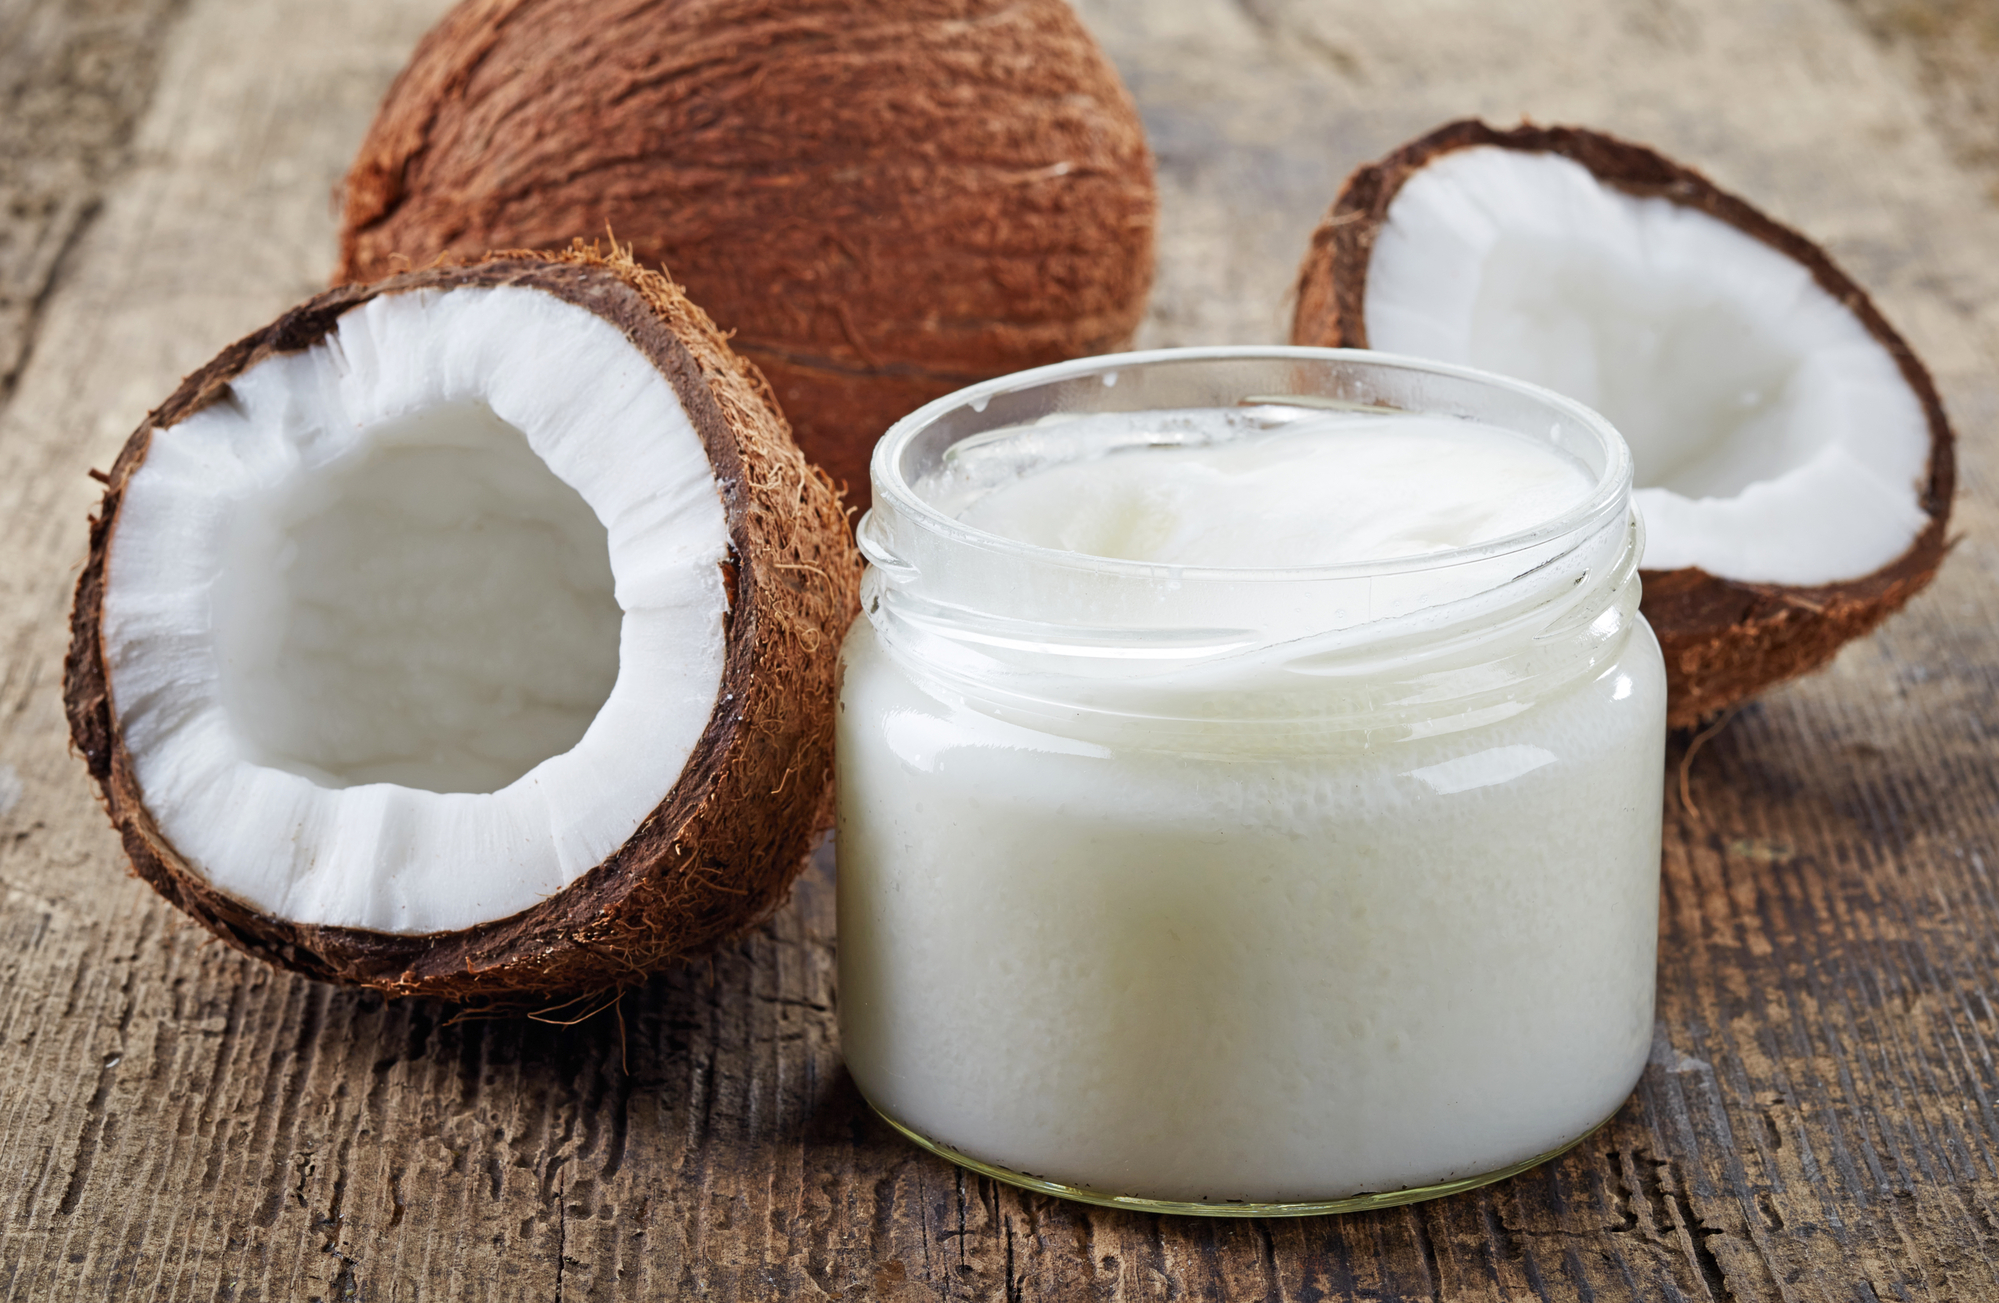 10 Things You Didn't Know About Coconut Oil